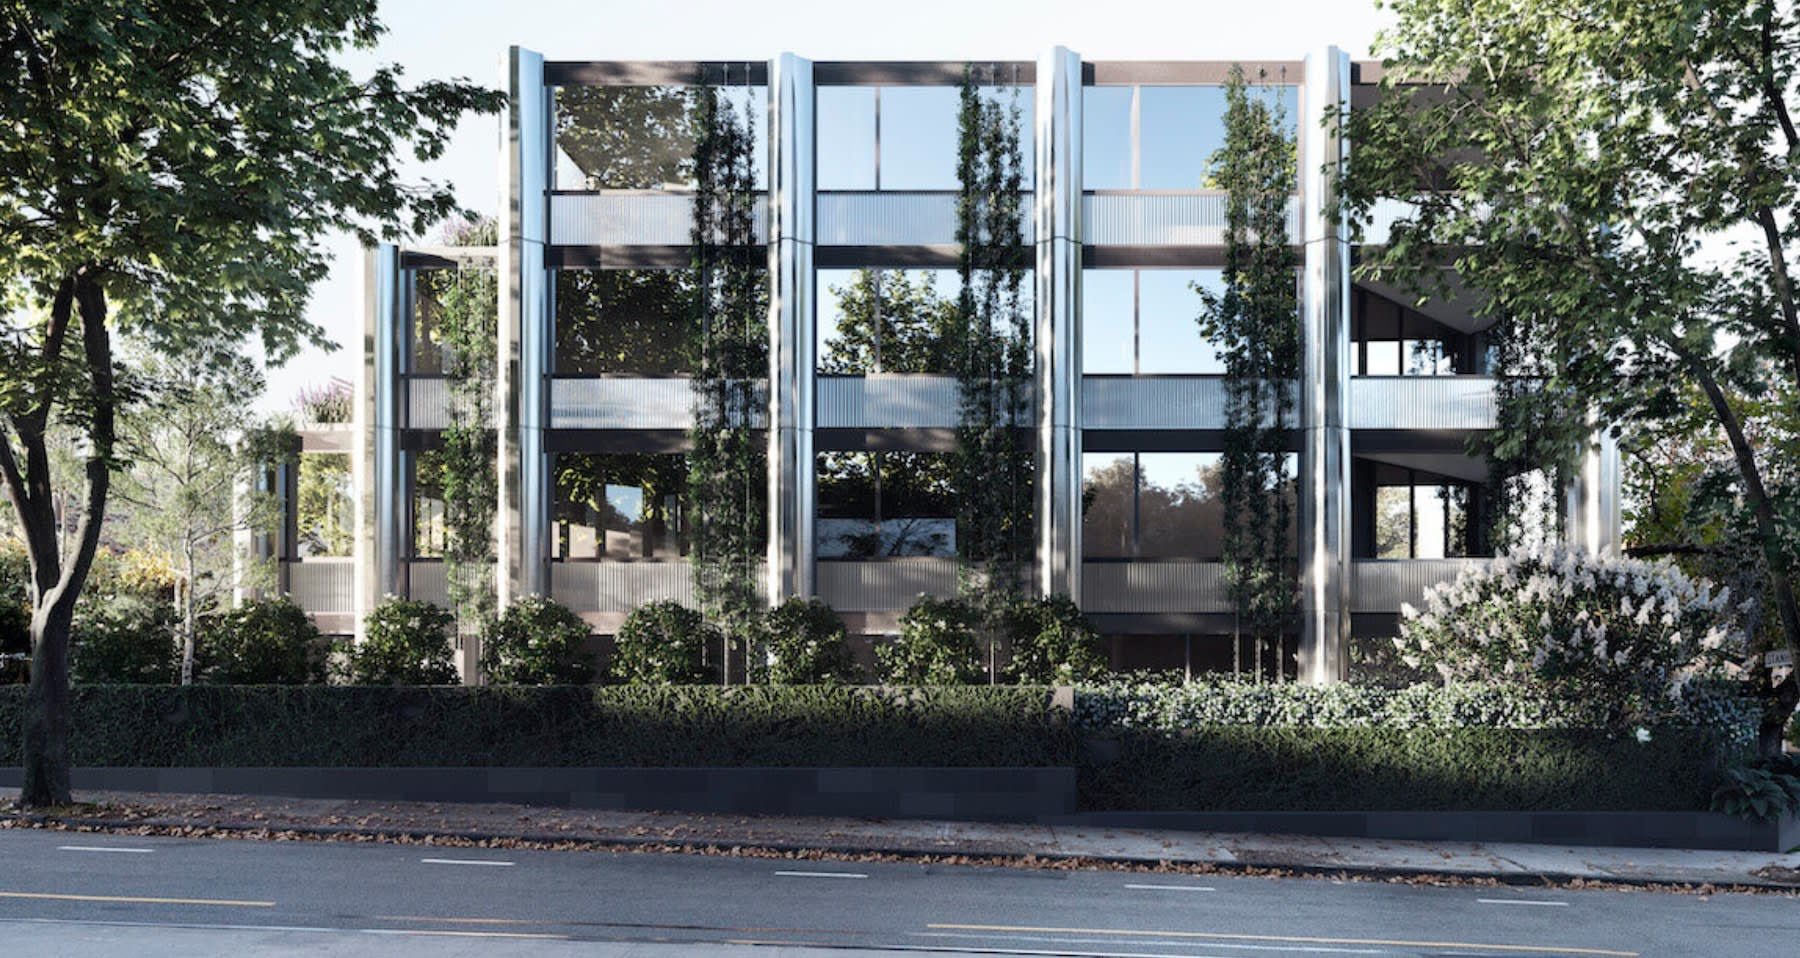 Luxury to hit South Yarra as Stanhope by Kincrest apartment development set for 2021 completion